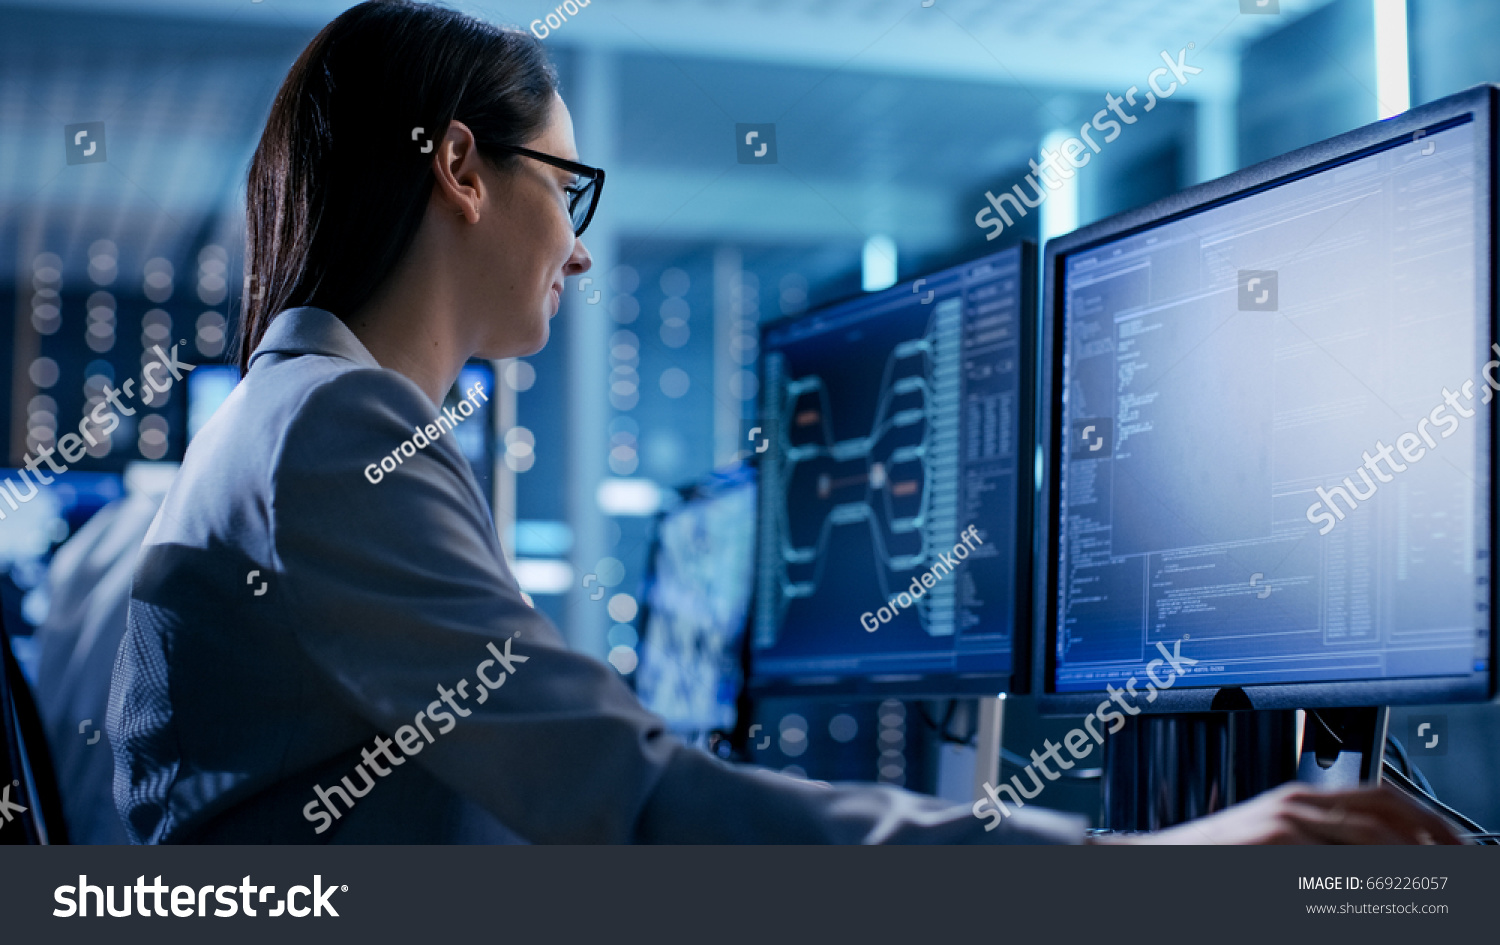 Close-up Shot of Female IT Engineer Working in Monitoring Room. She Works with Multiple Displays. #669226057